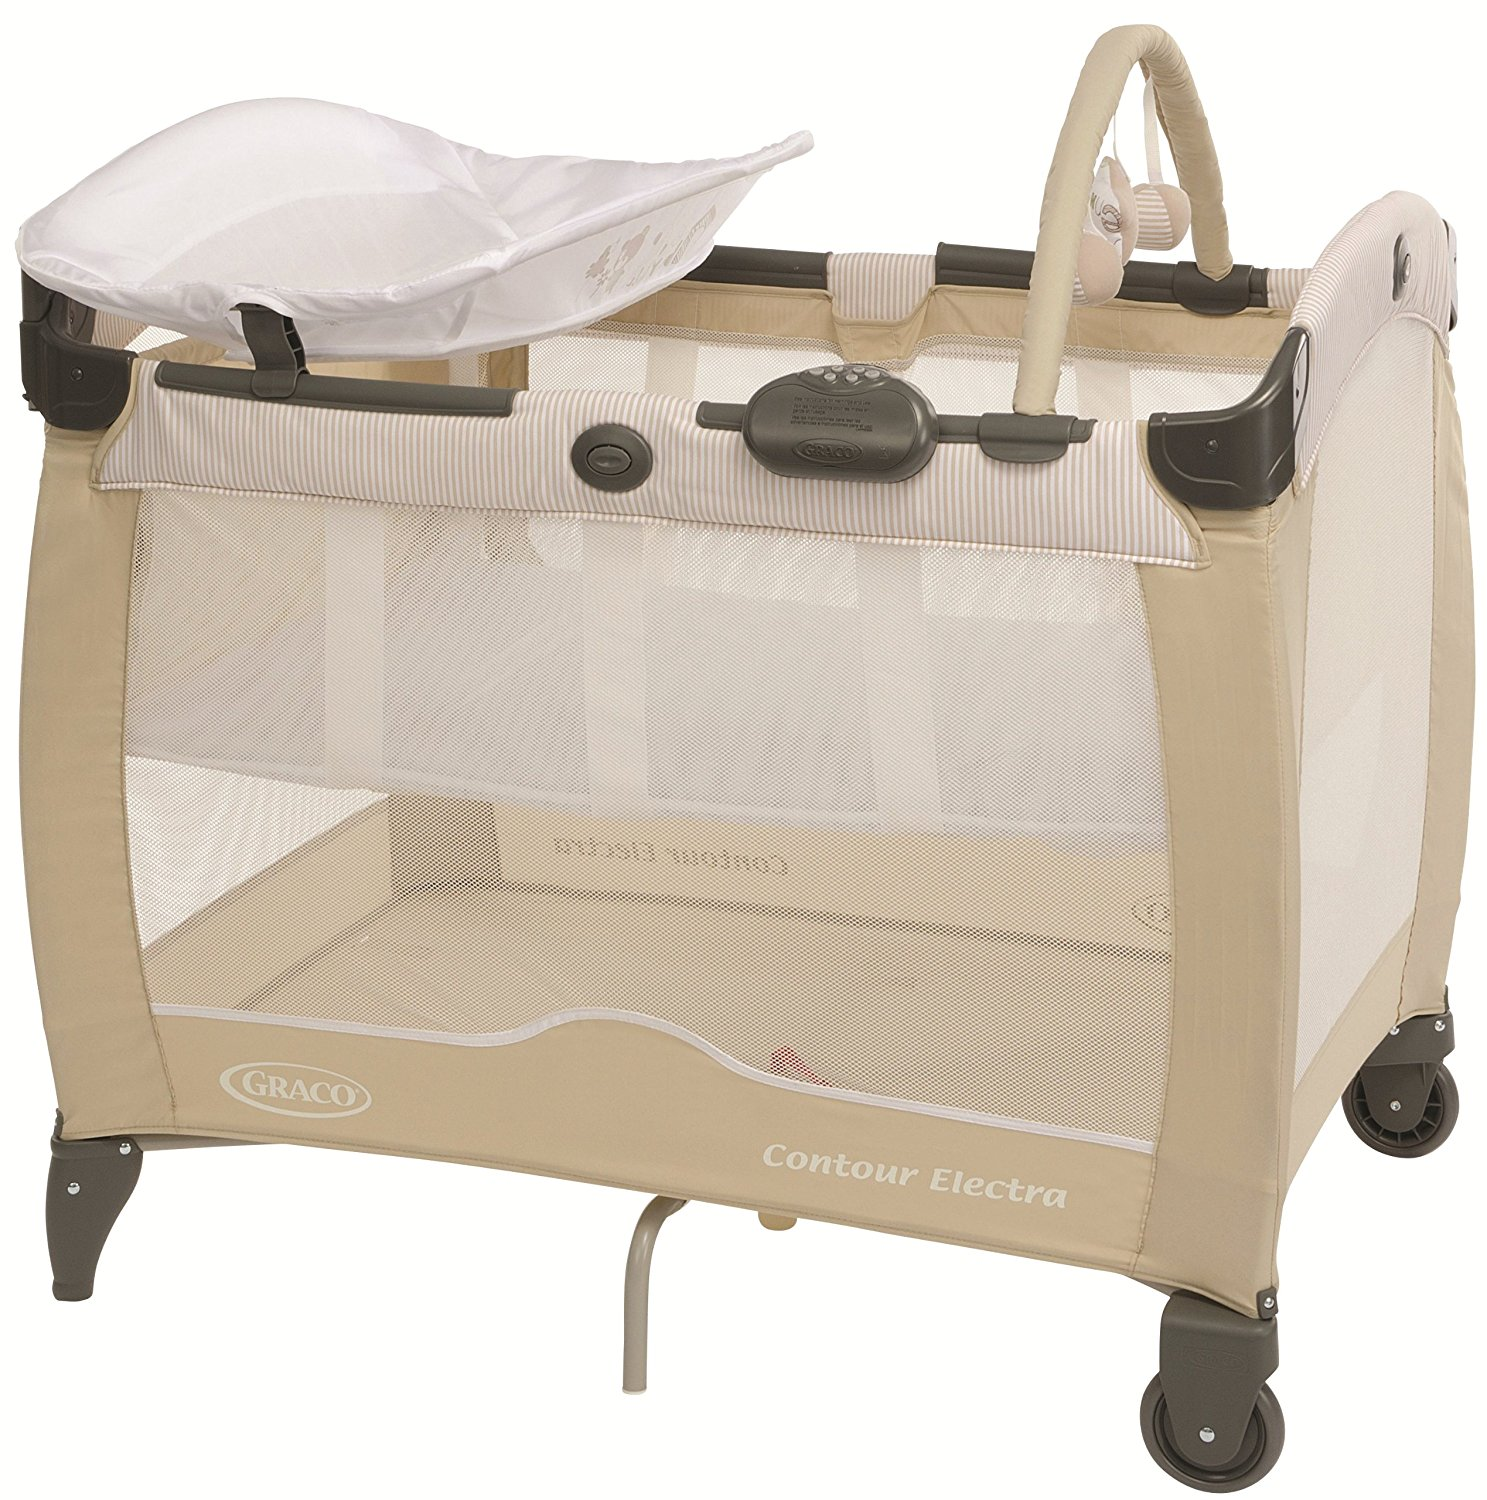 graco contour electra travel cot the graco contour electra travel cot is suitable from birth. Black Bedroom Furniture Sets. Home Design Ideas